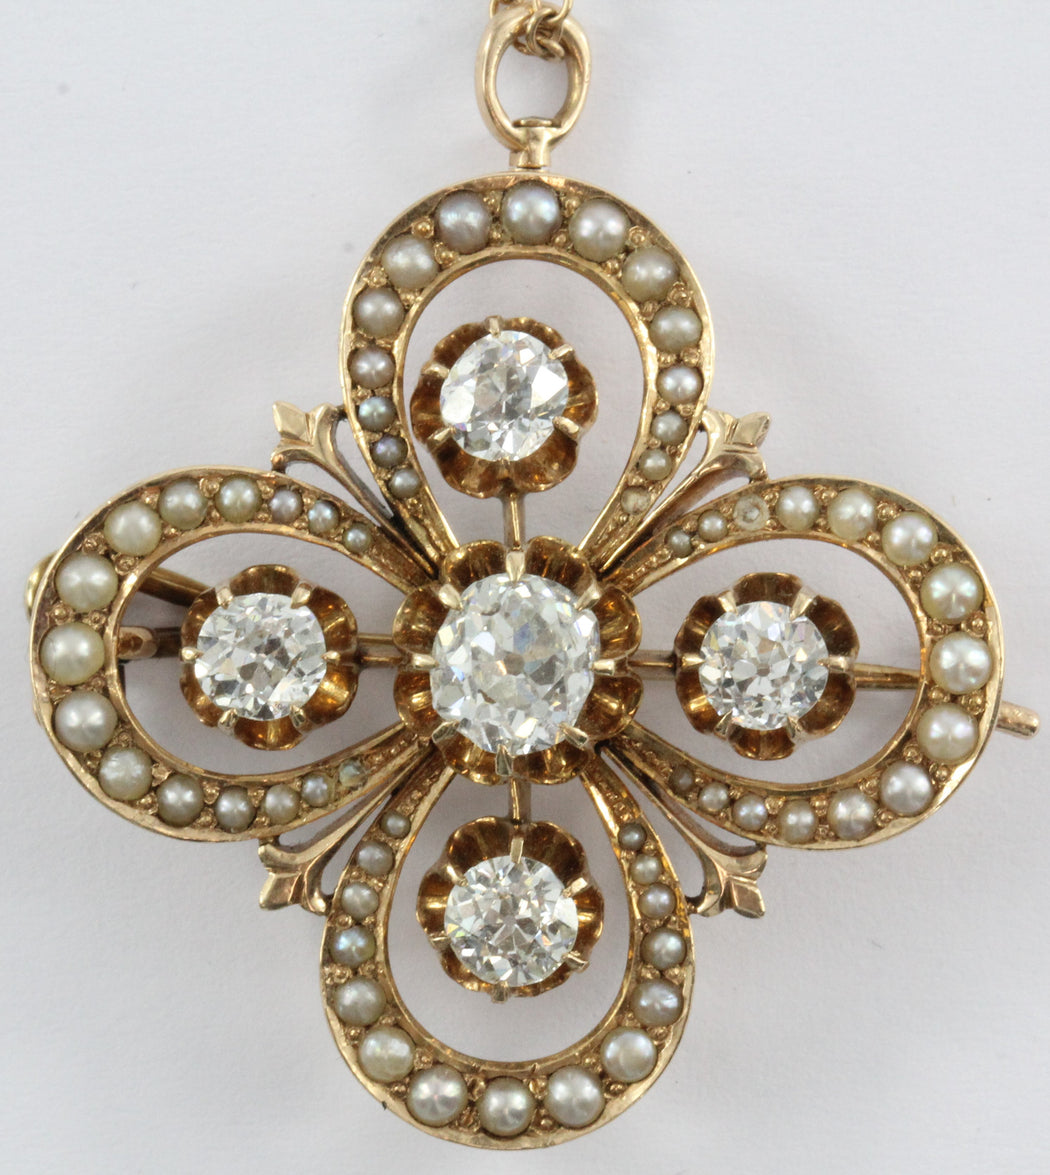 Antique 14K Gold Victorian Gothic Revival Old Mine Diamond & Seed Pearl Pendant - Queen May